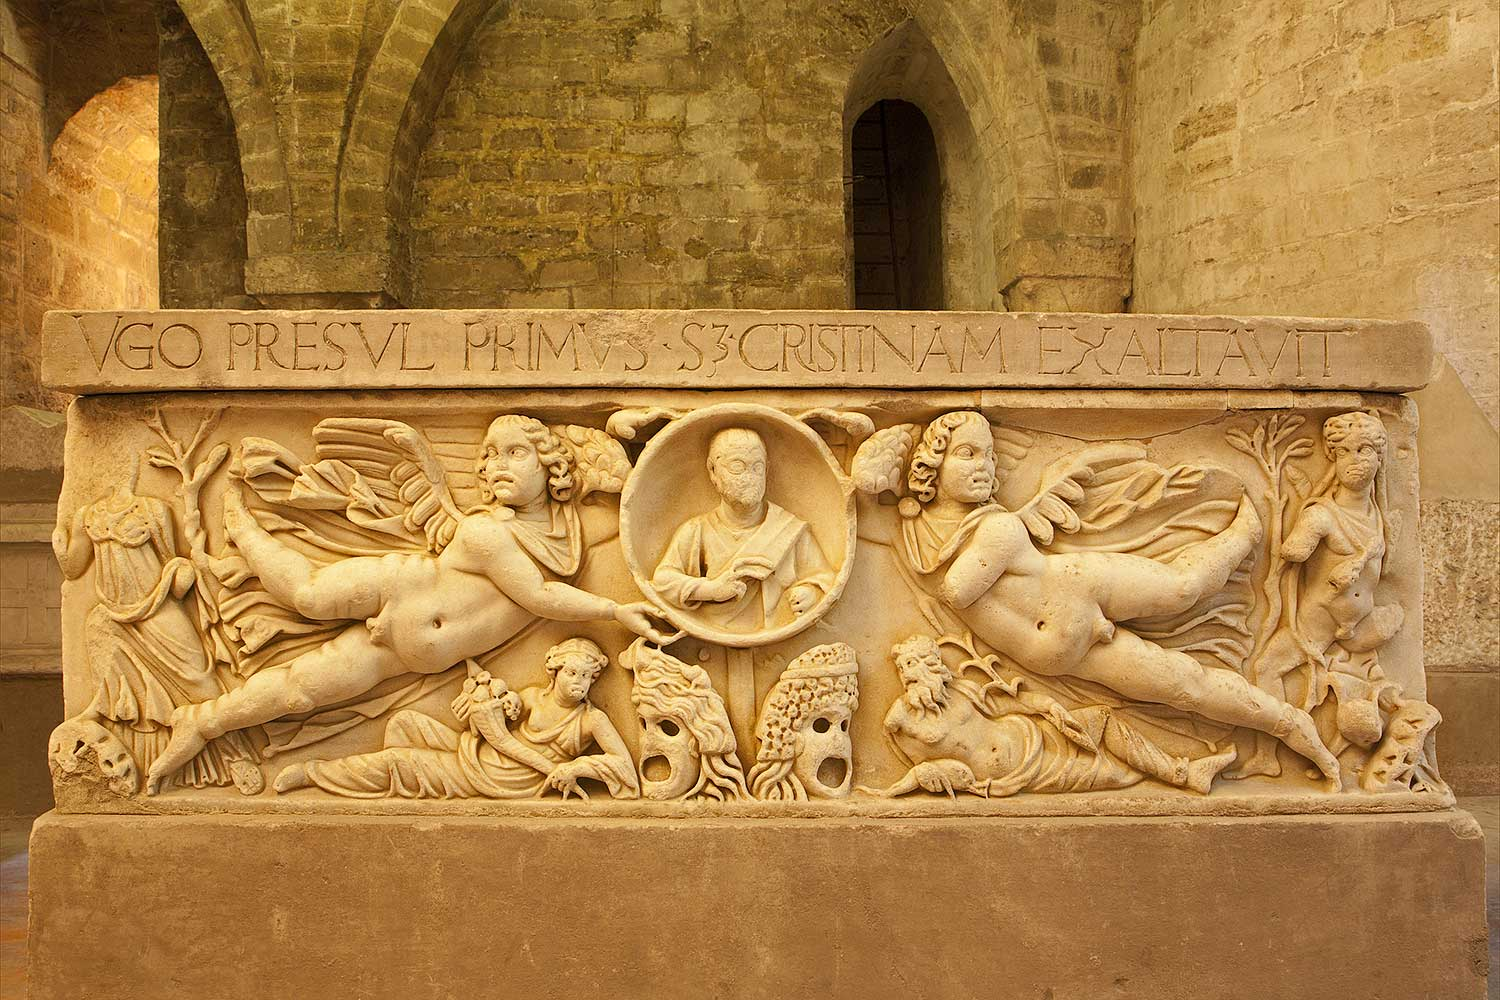 A sarcophagus in the basement of the cathedral